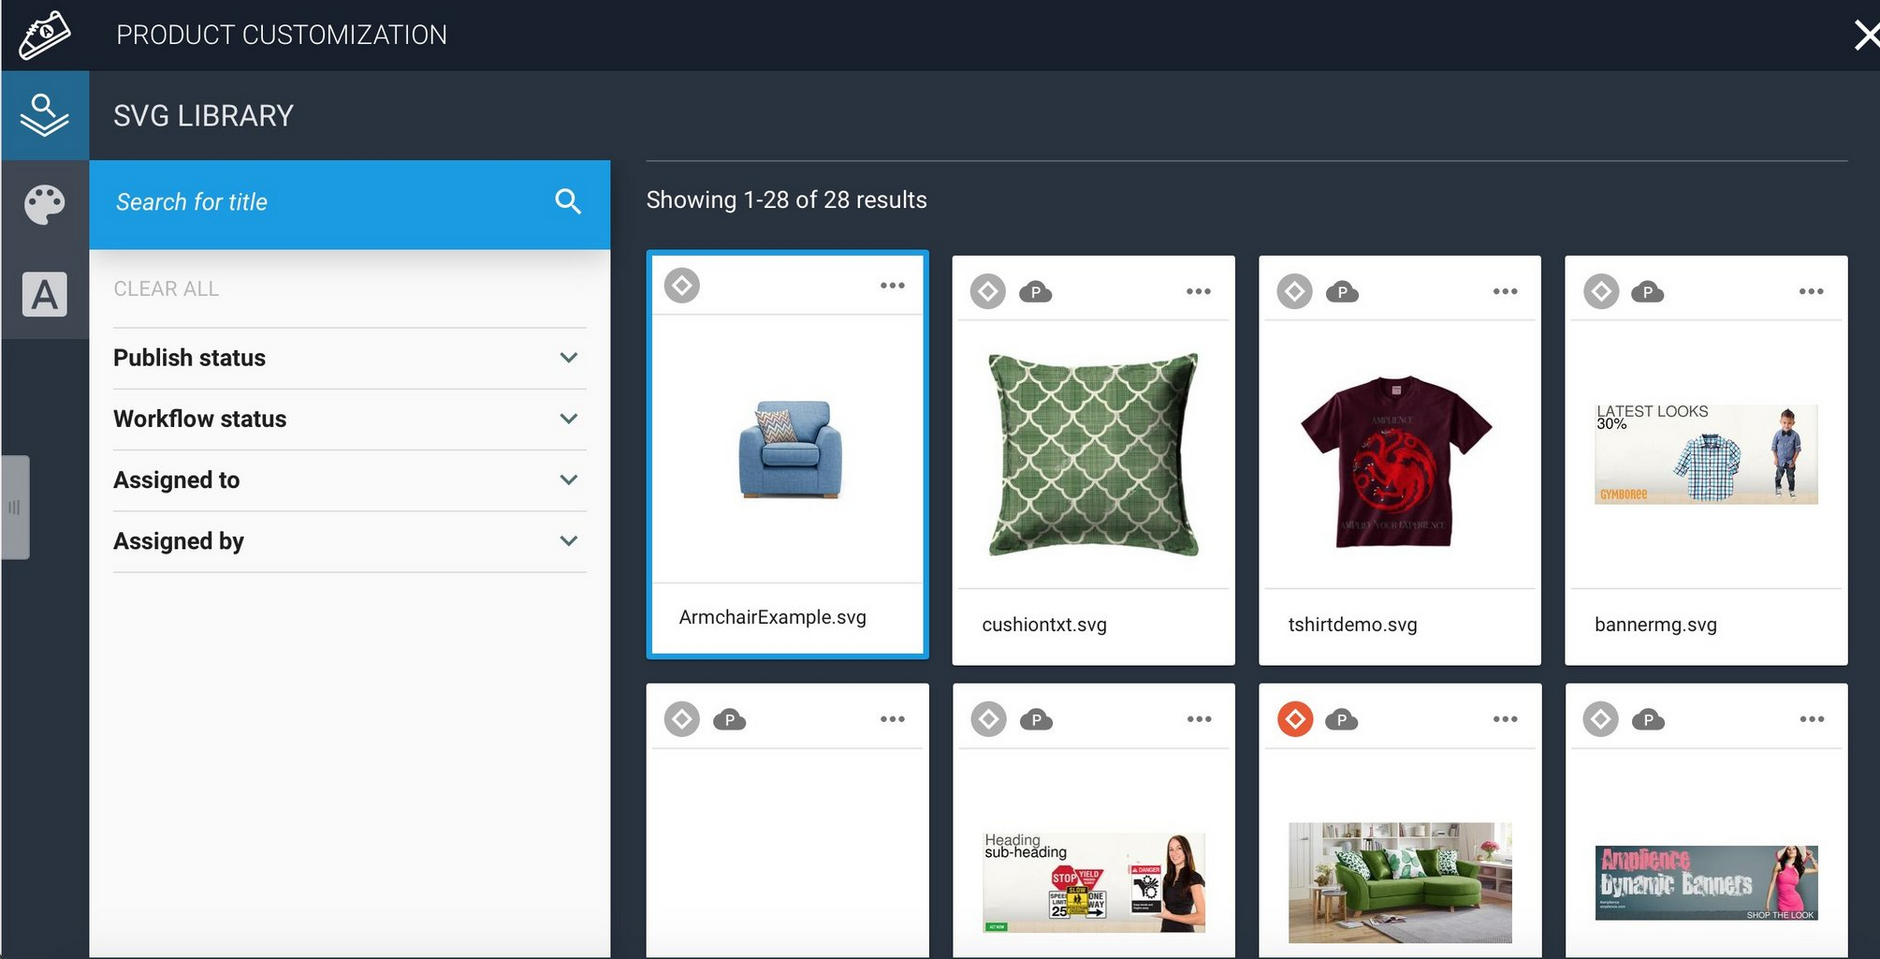 The SVG library in the product customization app